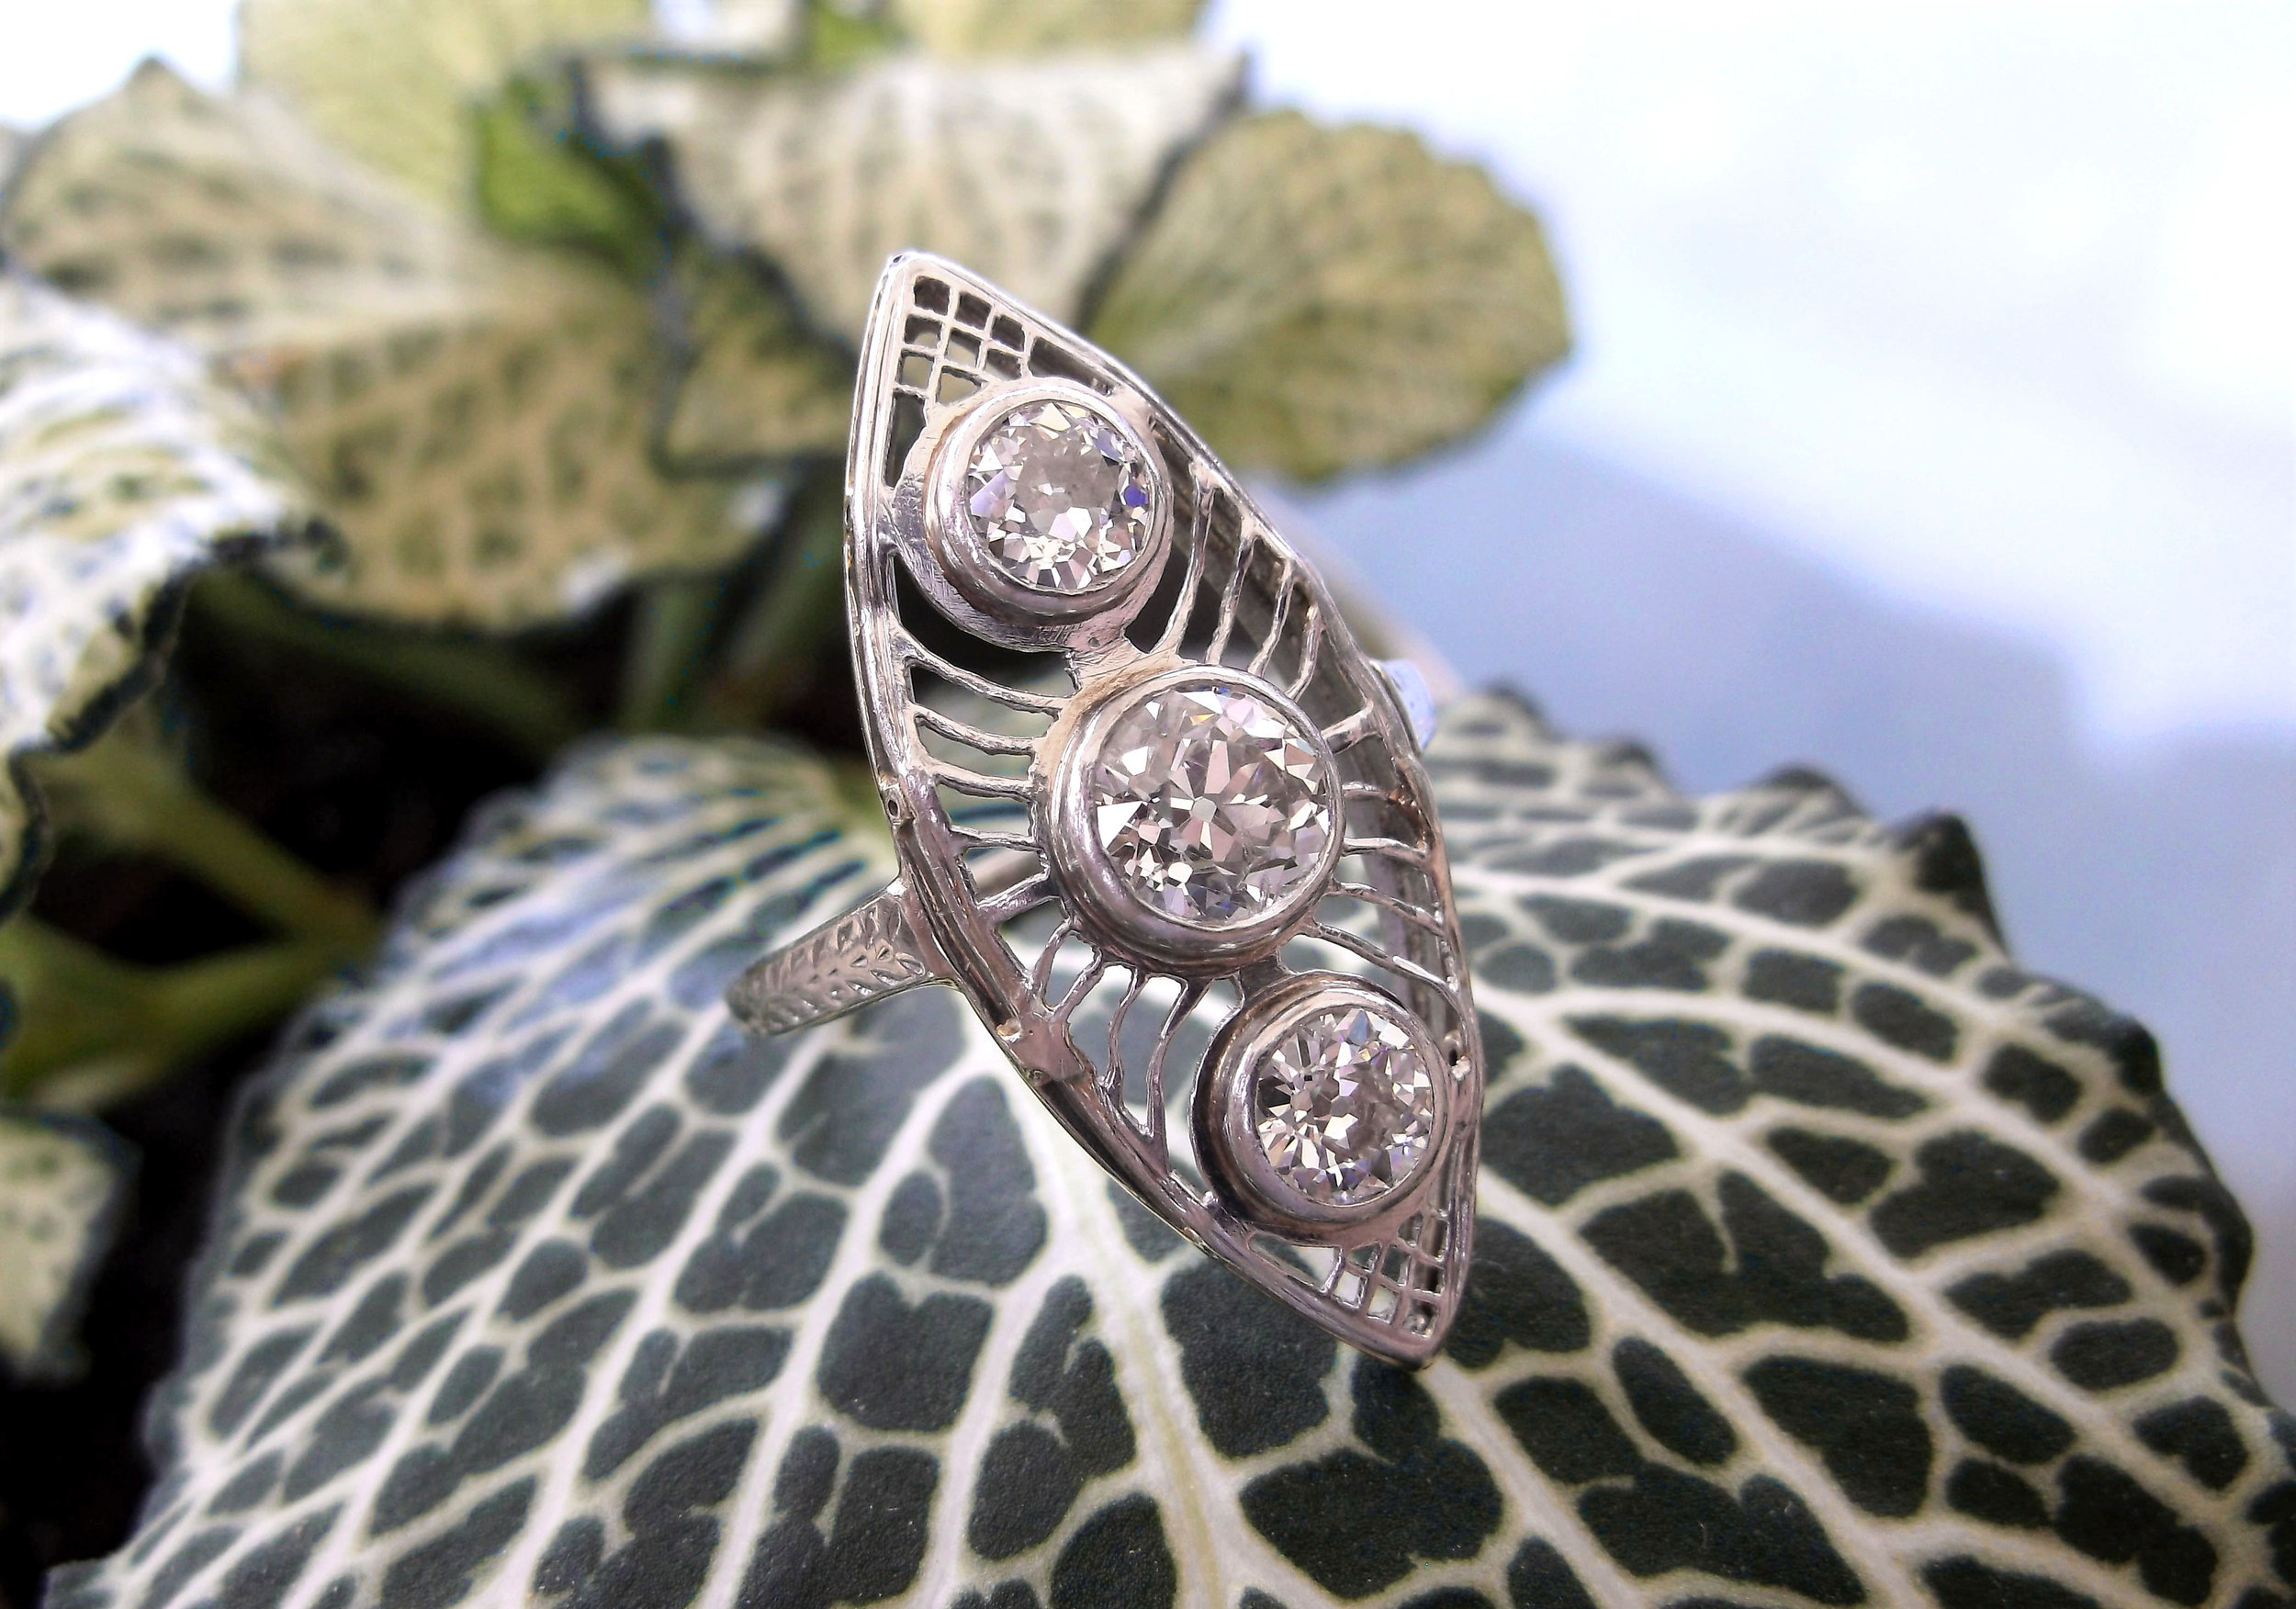 SOLD - Airy and intricate Art Deco Old European cut diamond ring with beautiful white gold filigree details. Shop this ring  HERE